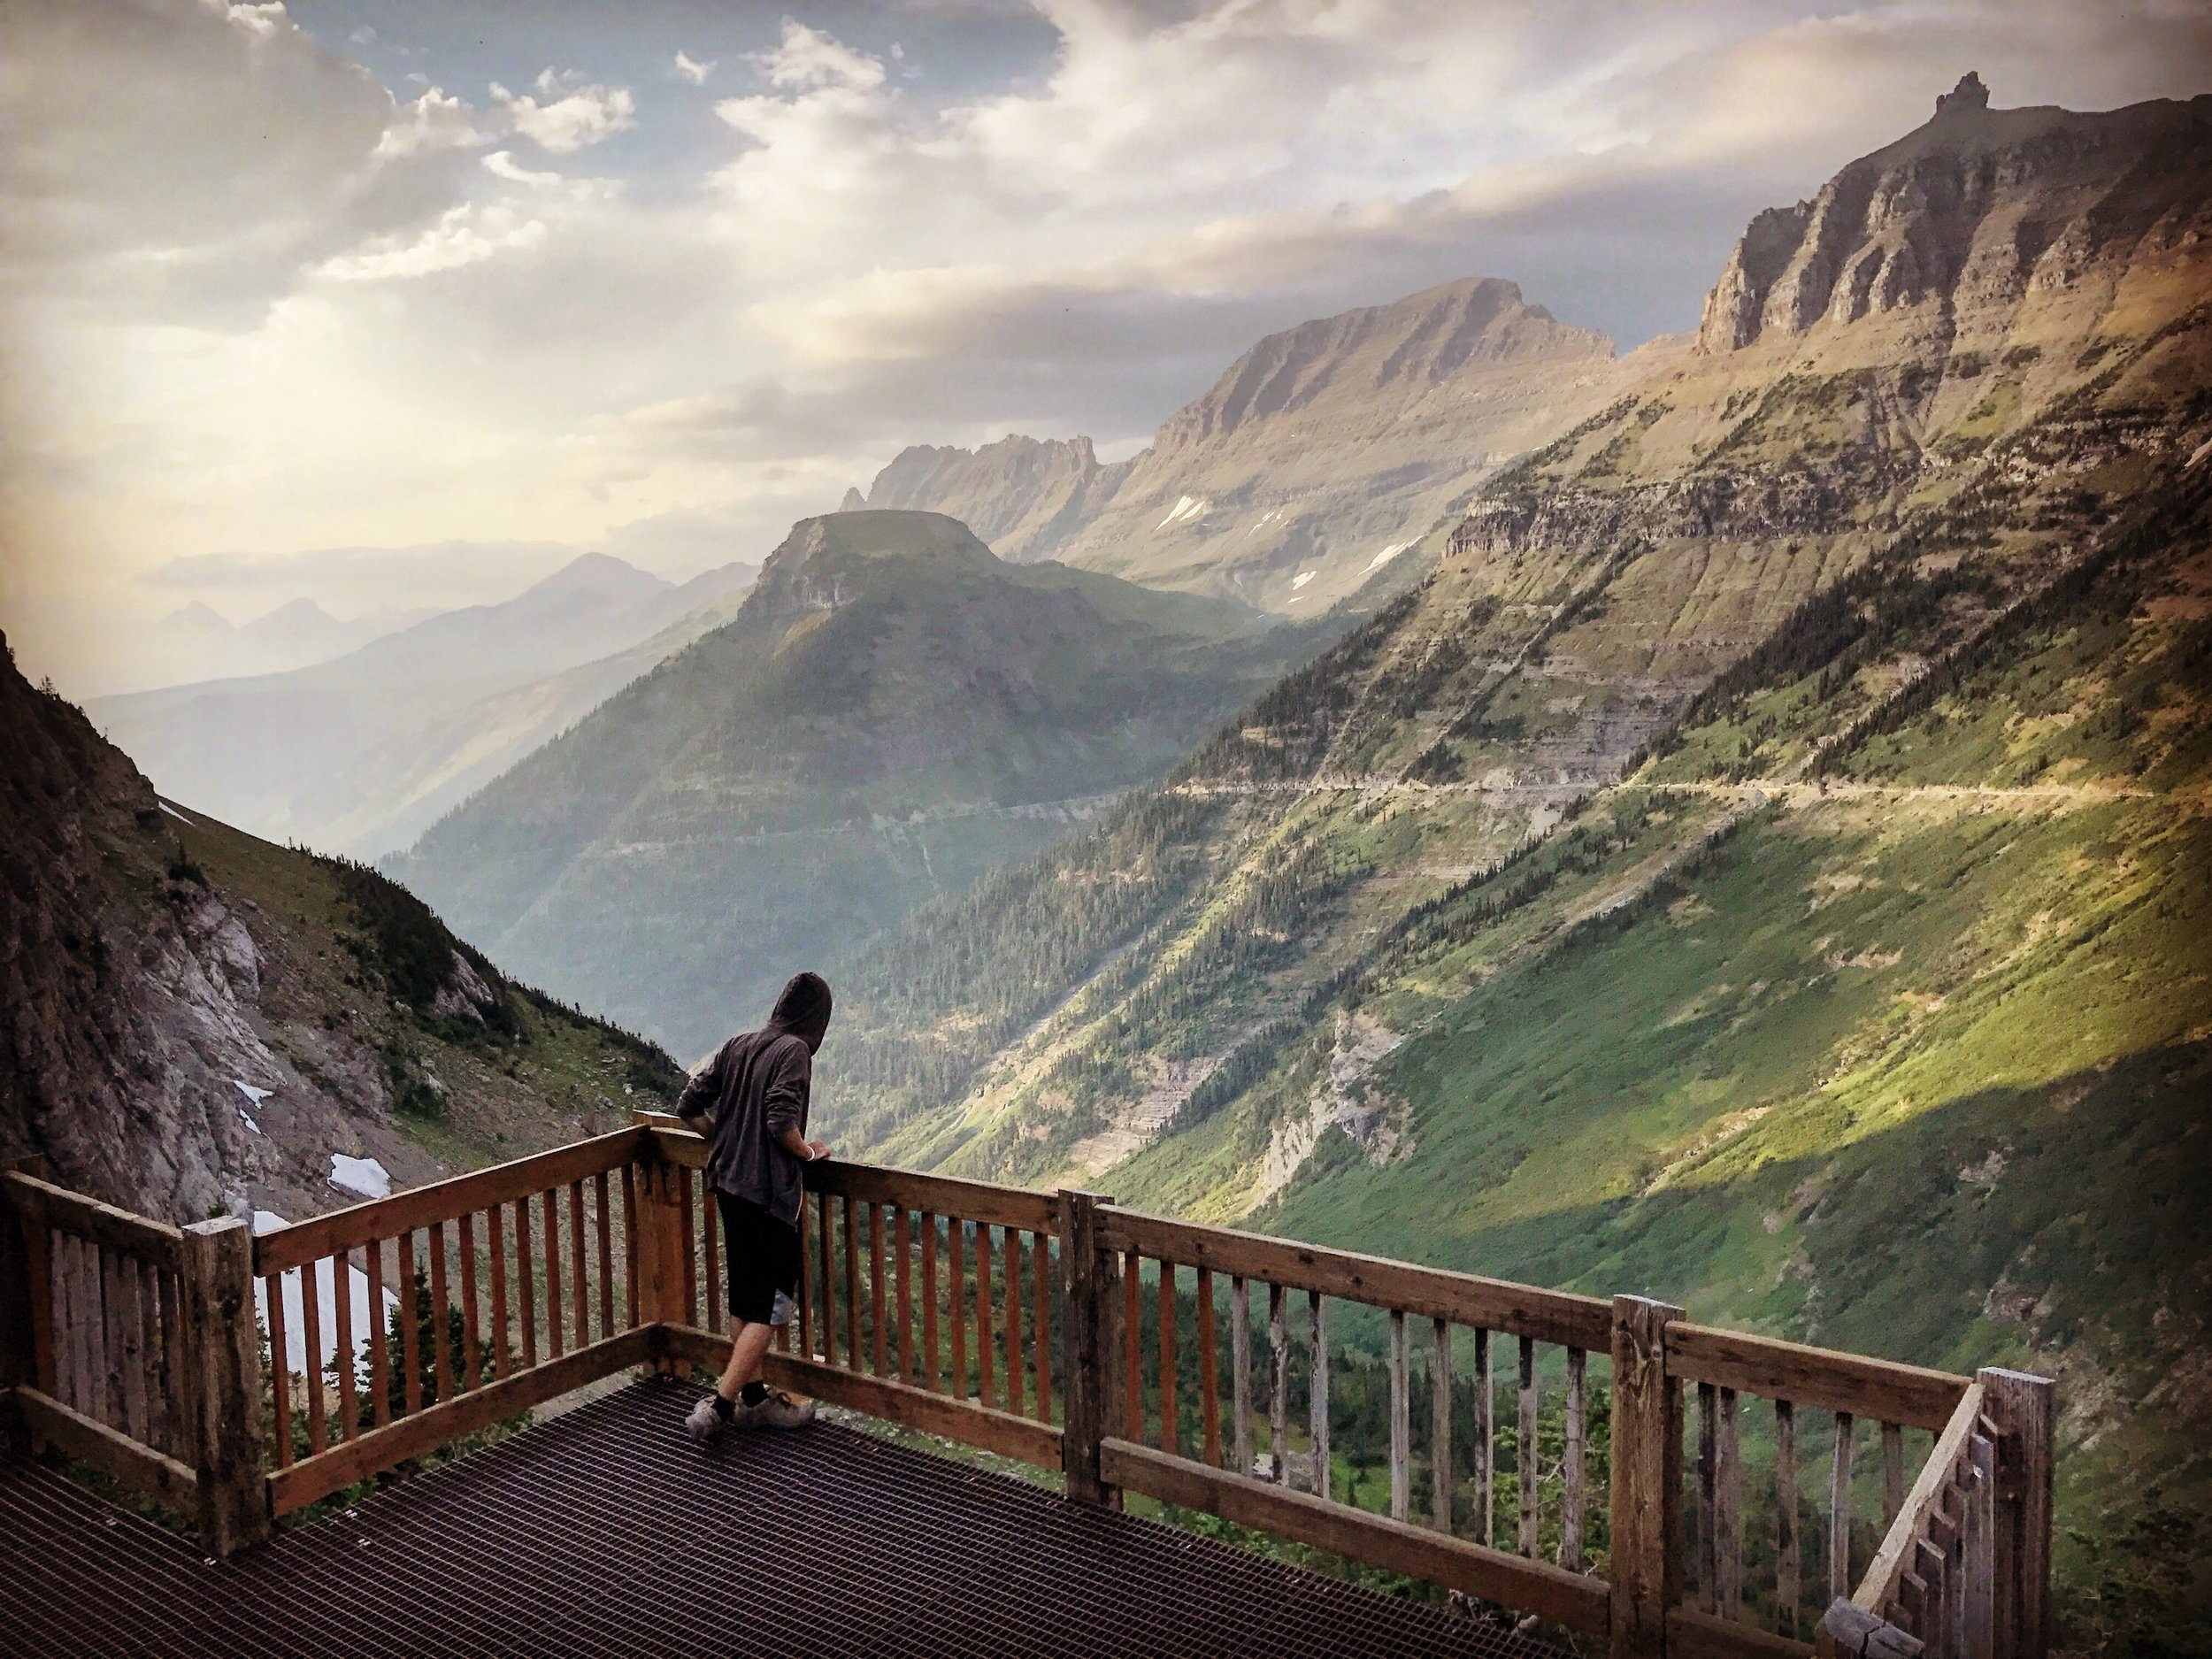 At any point along Going-To-The-Sun Road, you can have amazing mountain views!